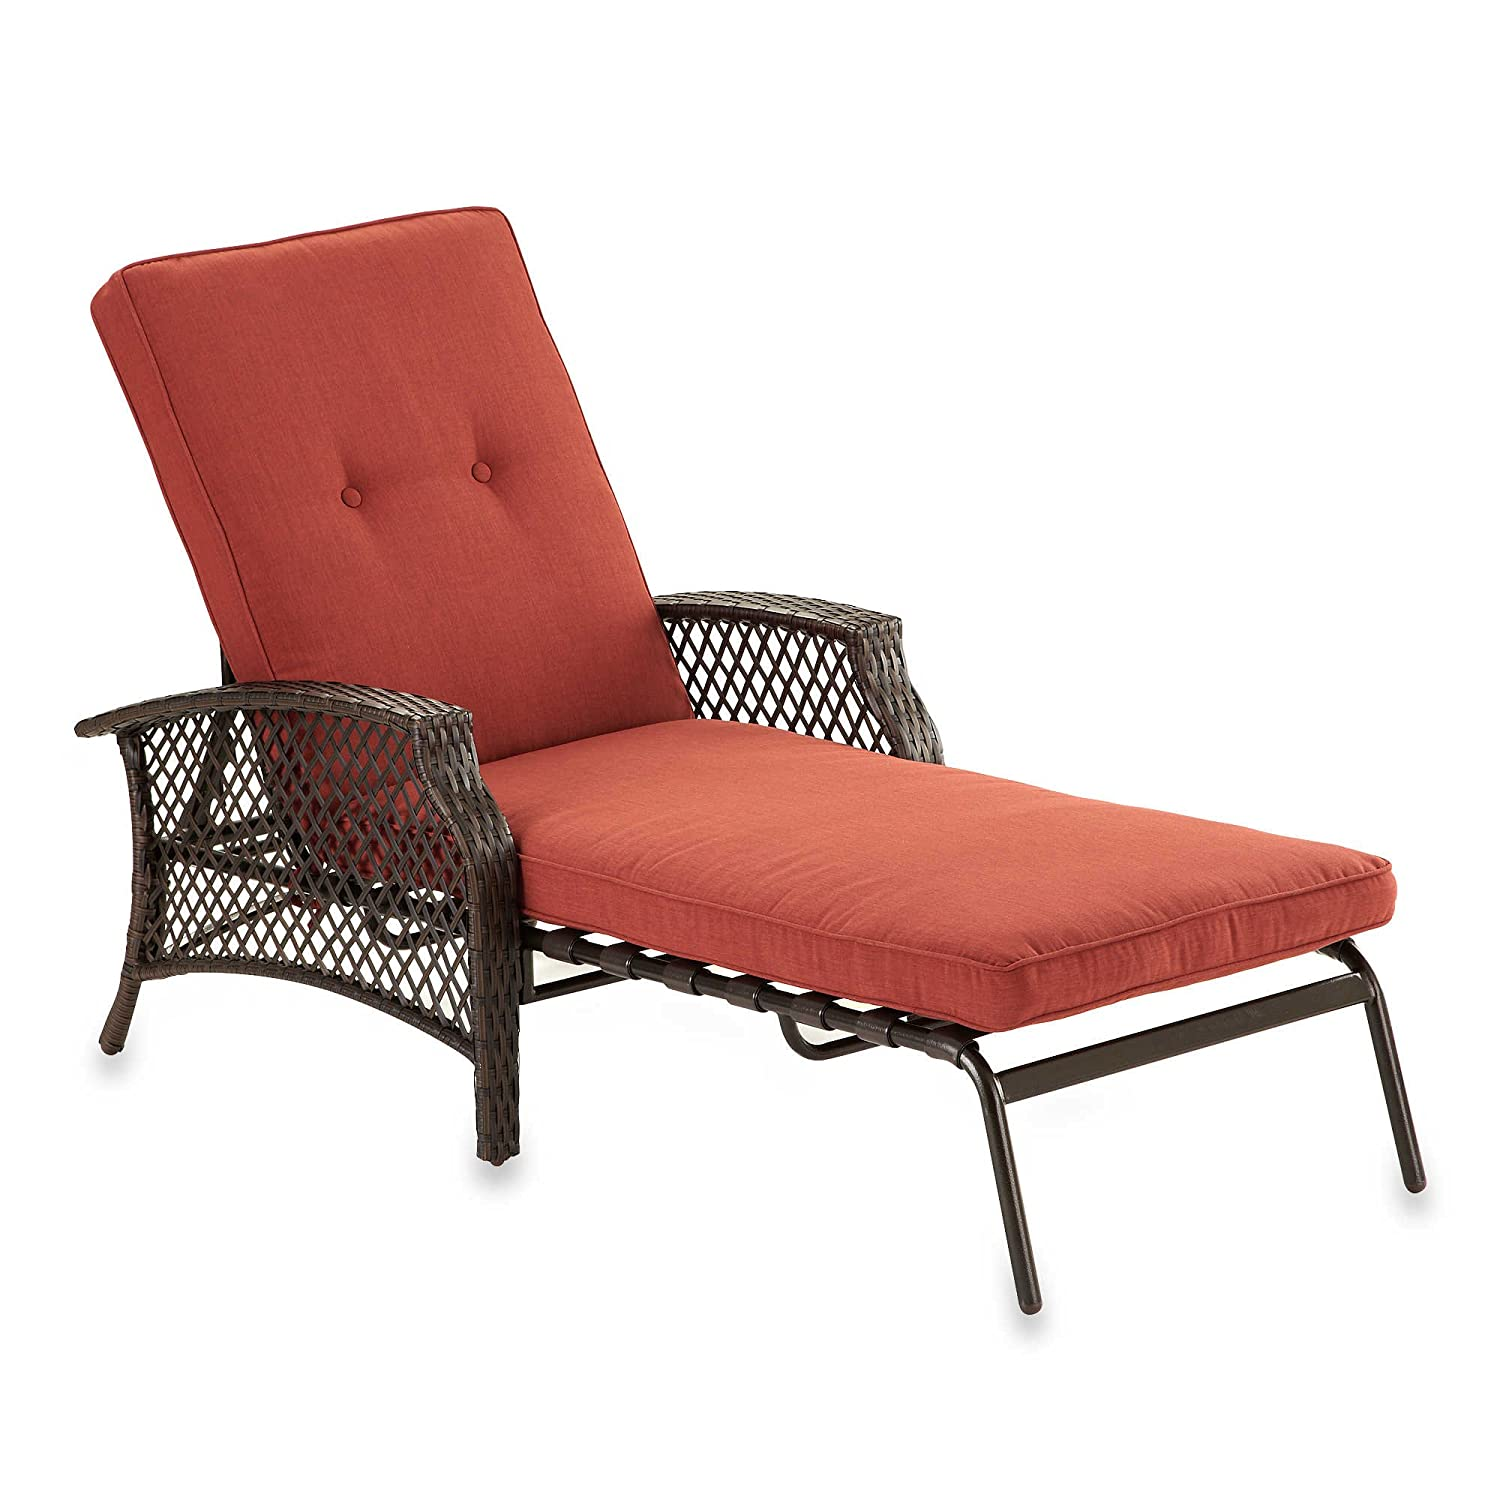 Patio chaise lounge better homes and gardens outdoor patio for Alyssa outdoor chaise lounge